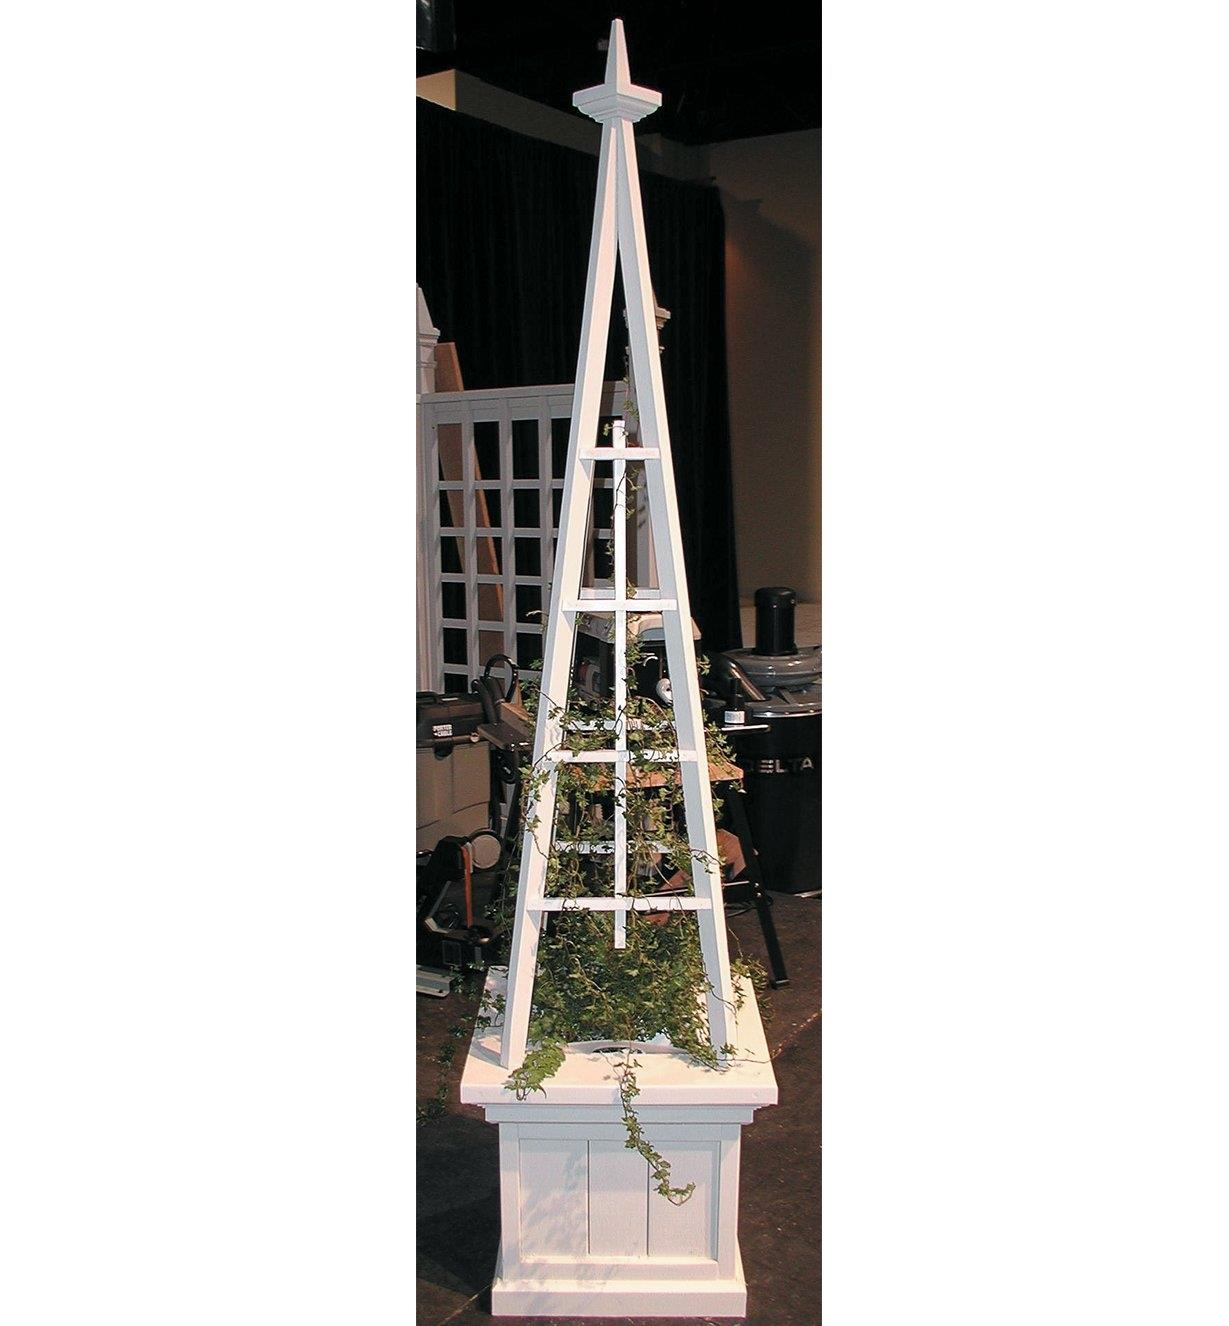 11L0404 - Obelisk Planter Plan